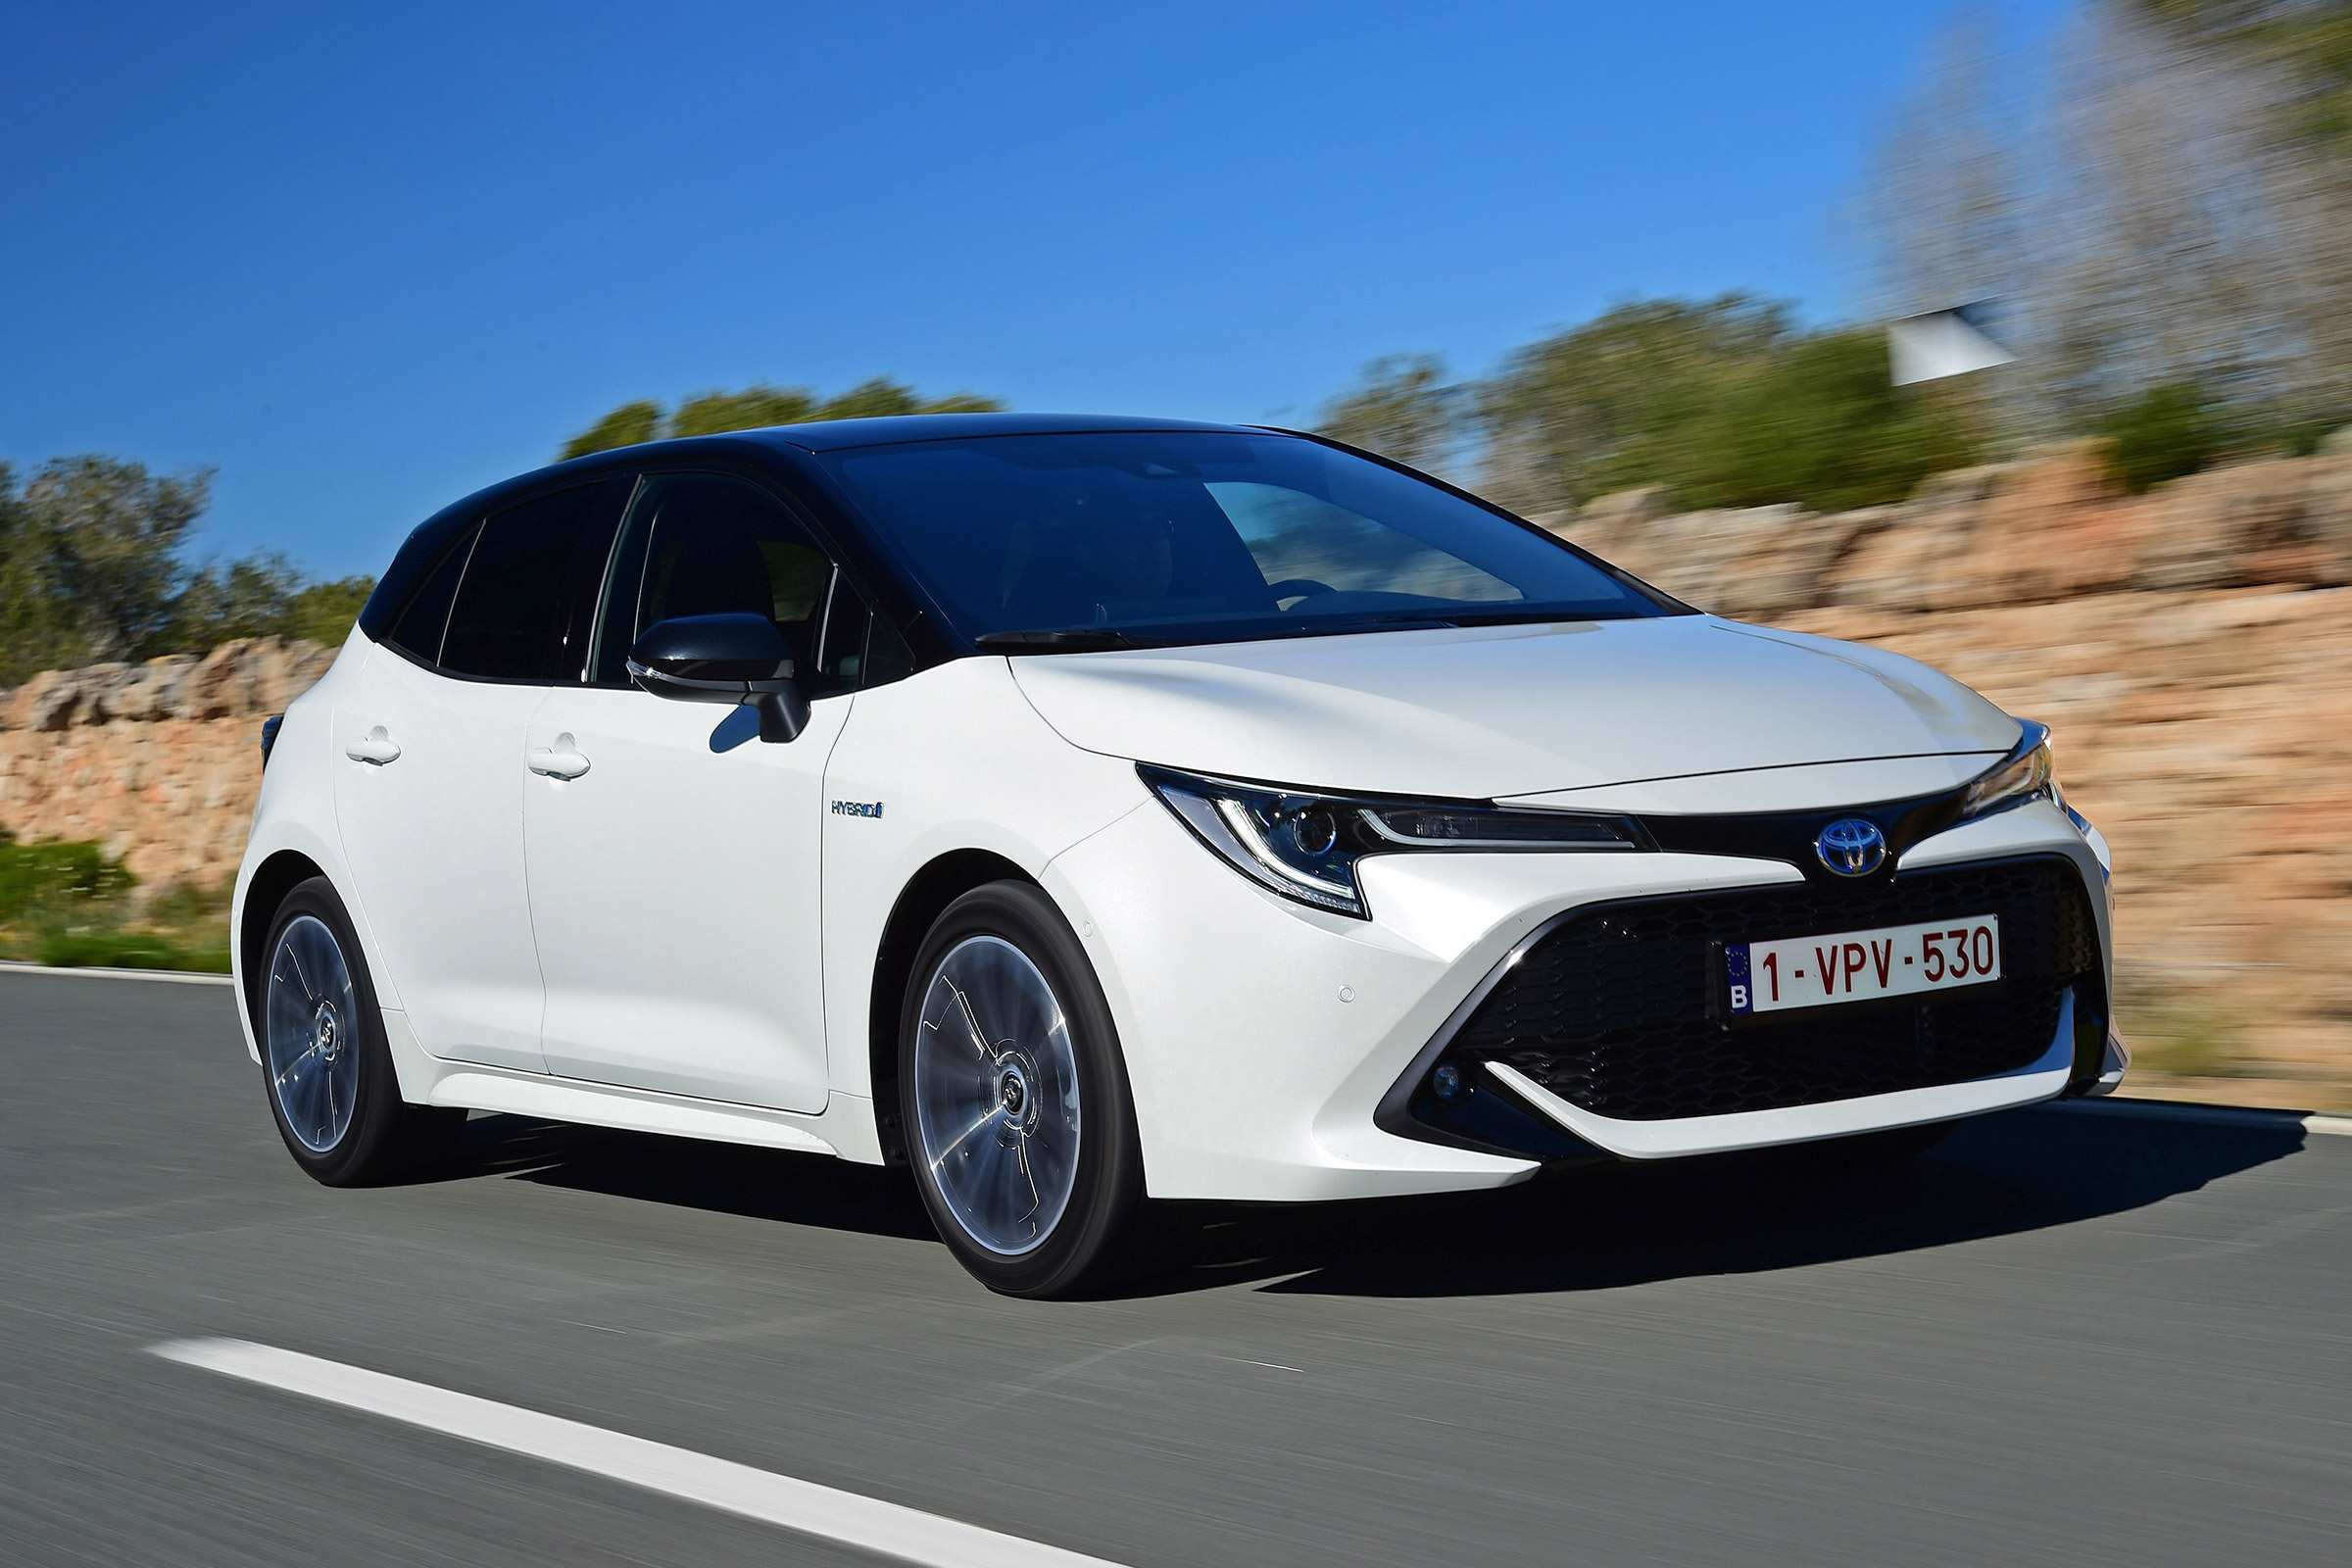 87 Best Review Toyota Corolla 2019 Uk Style by Toyota Corolla 2019 Uk